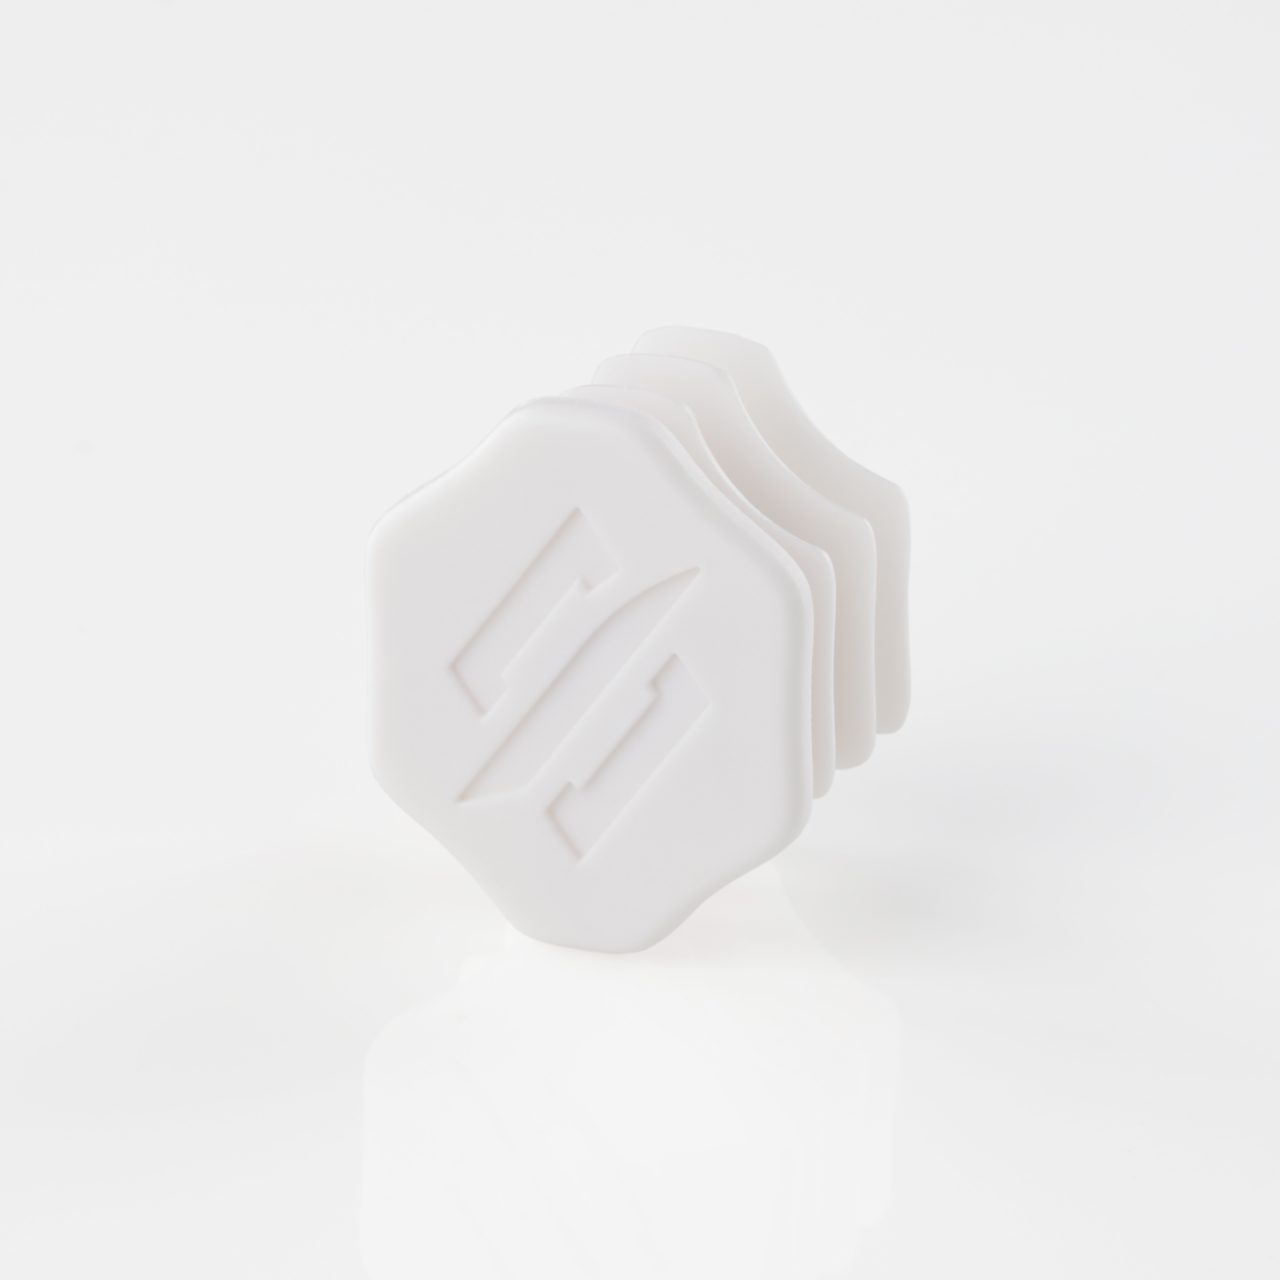 StringKing Lacrosse Shaft End Cap Angle - White